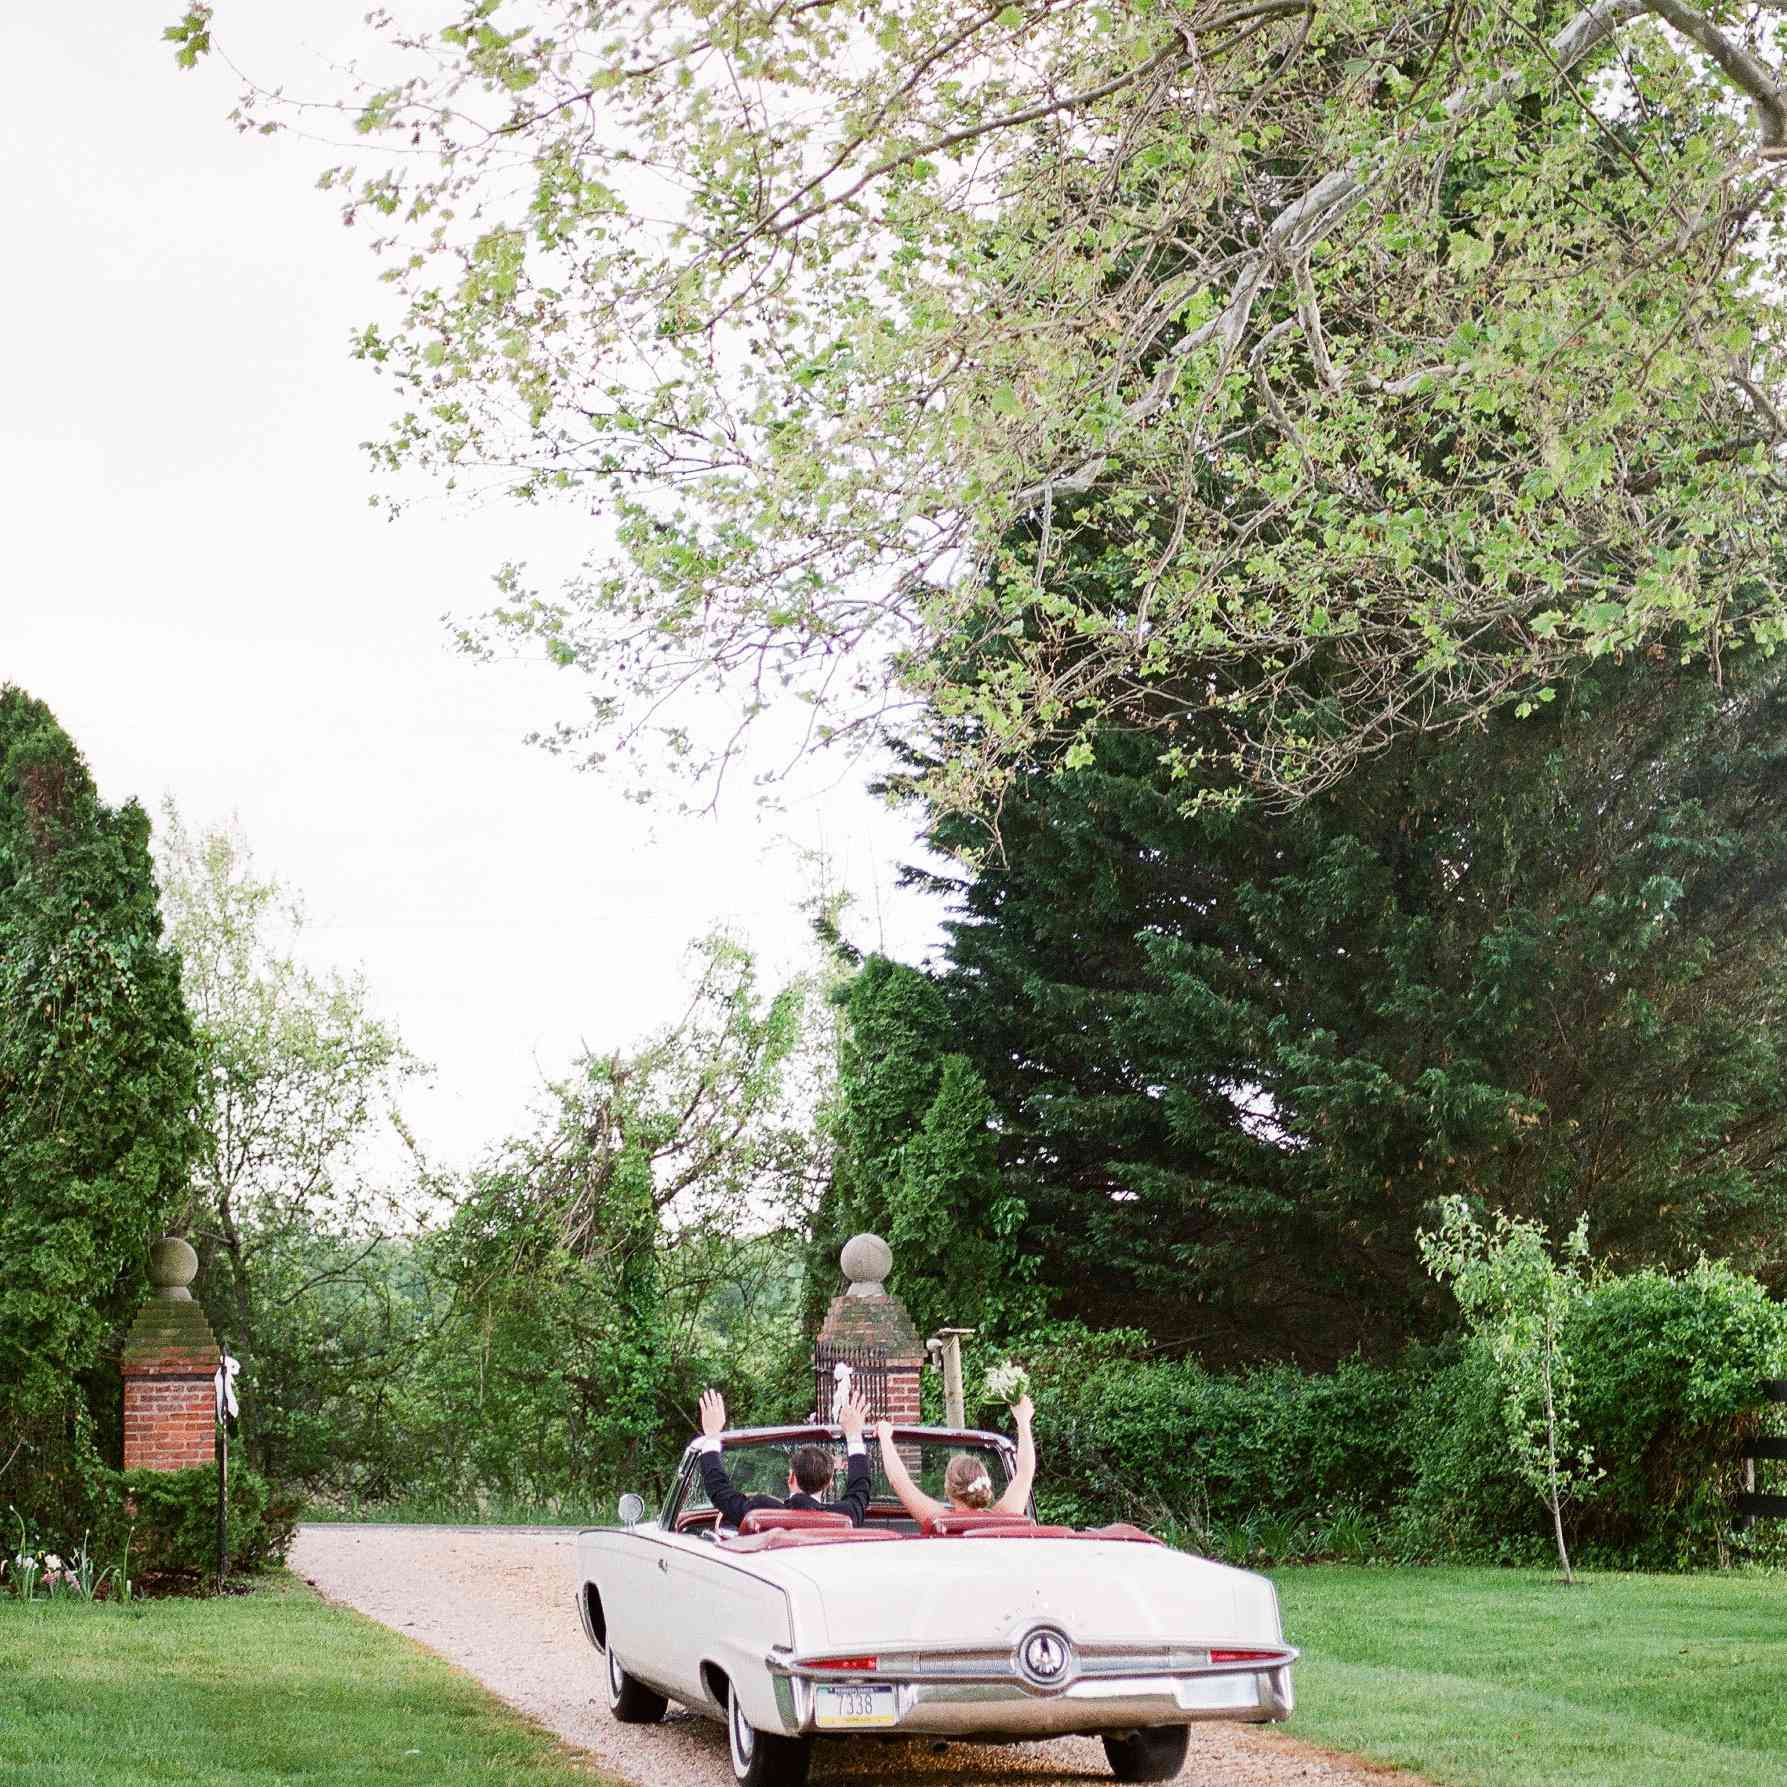 Bride and groom in convertible